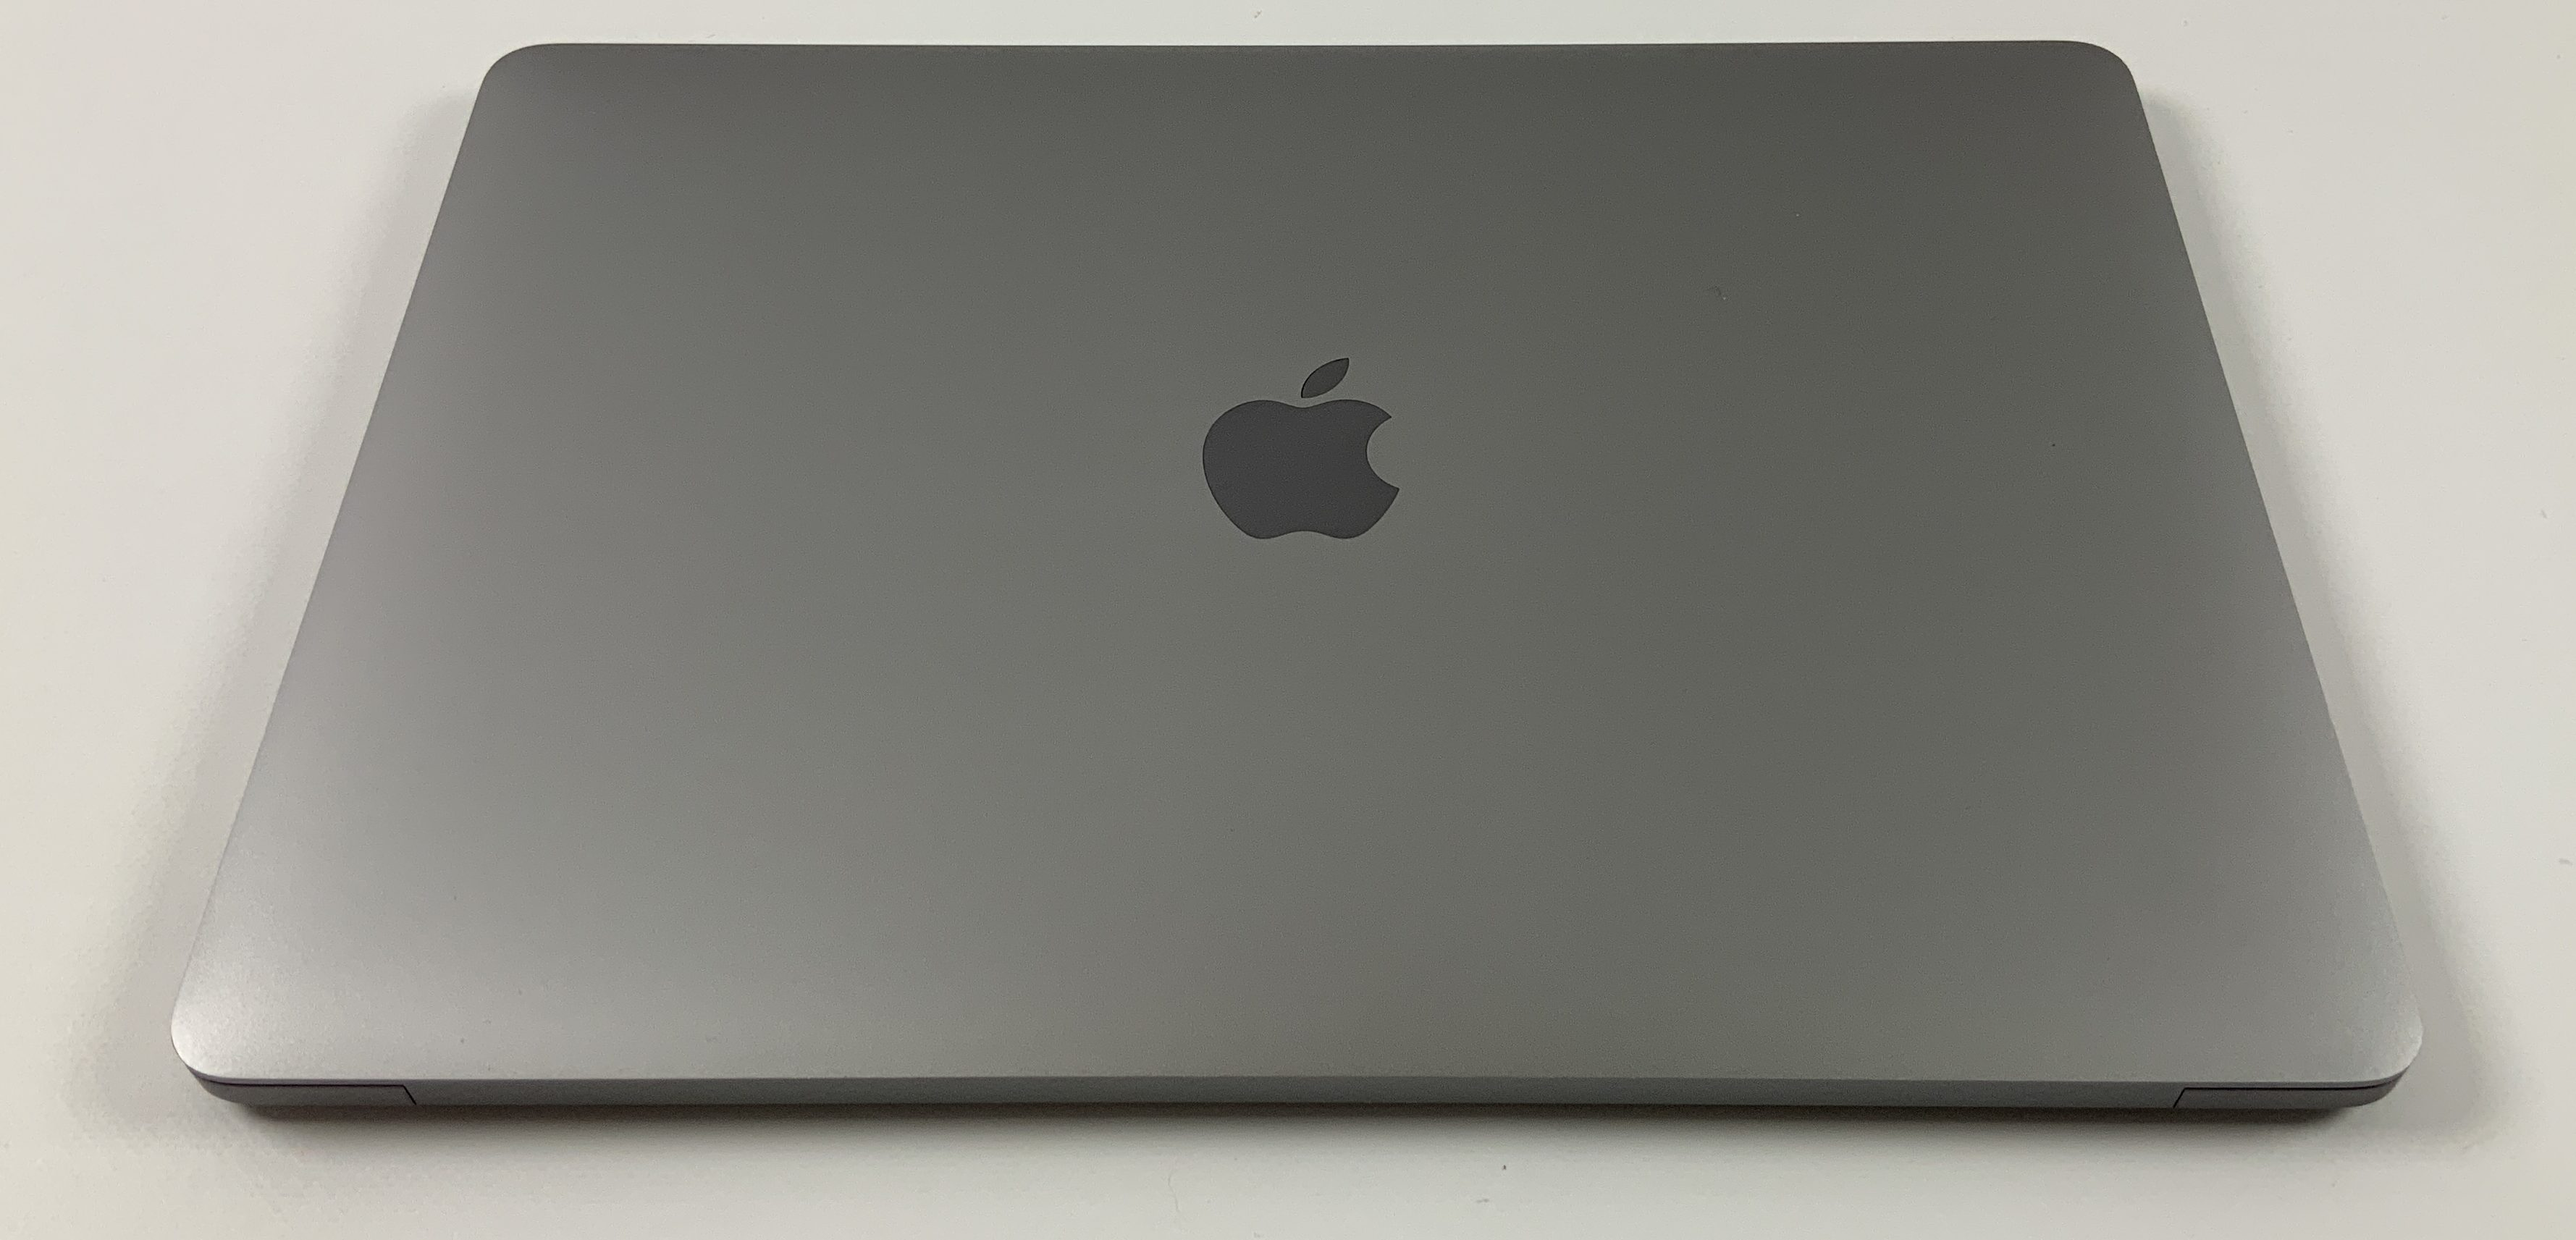 "MacBook Pro 13"" 4TBT Late 2016 (Intel Core i5 2.9 GHz 8 GB RAM 256 GB SSD), Space Gray, Intel Core i5 2.9 GHz, 8 GB RAM, 256 GB SSD, imagen 2"